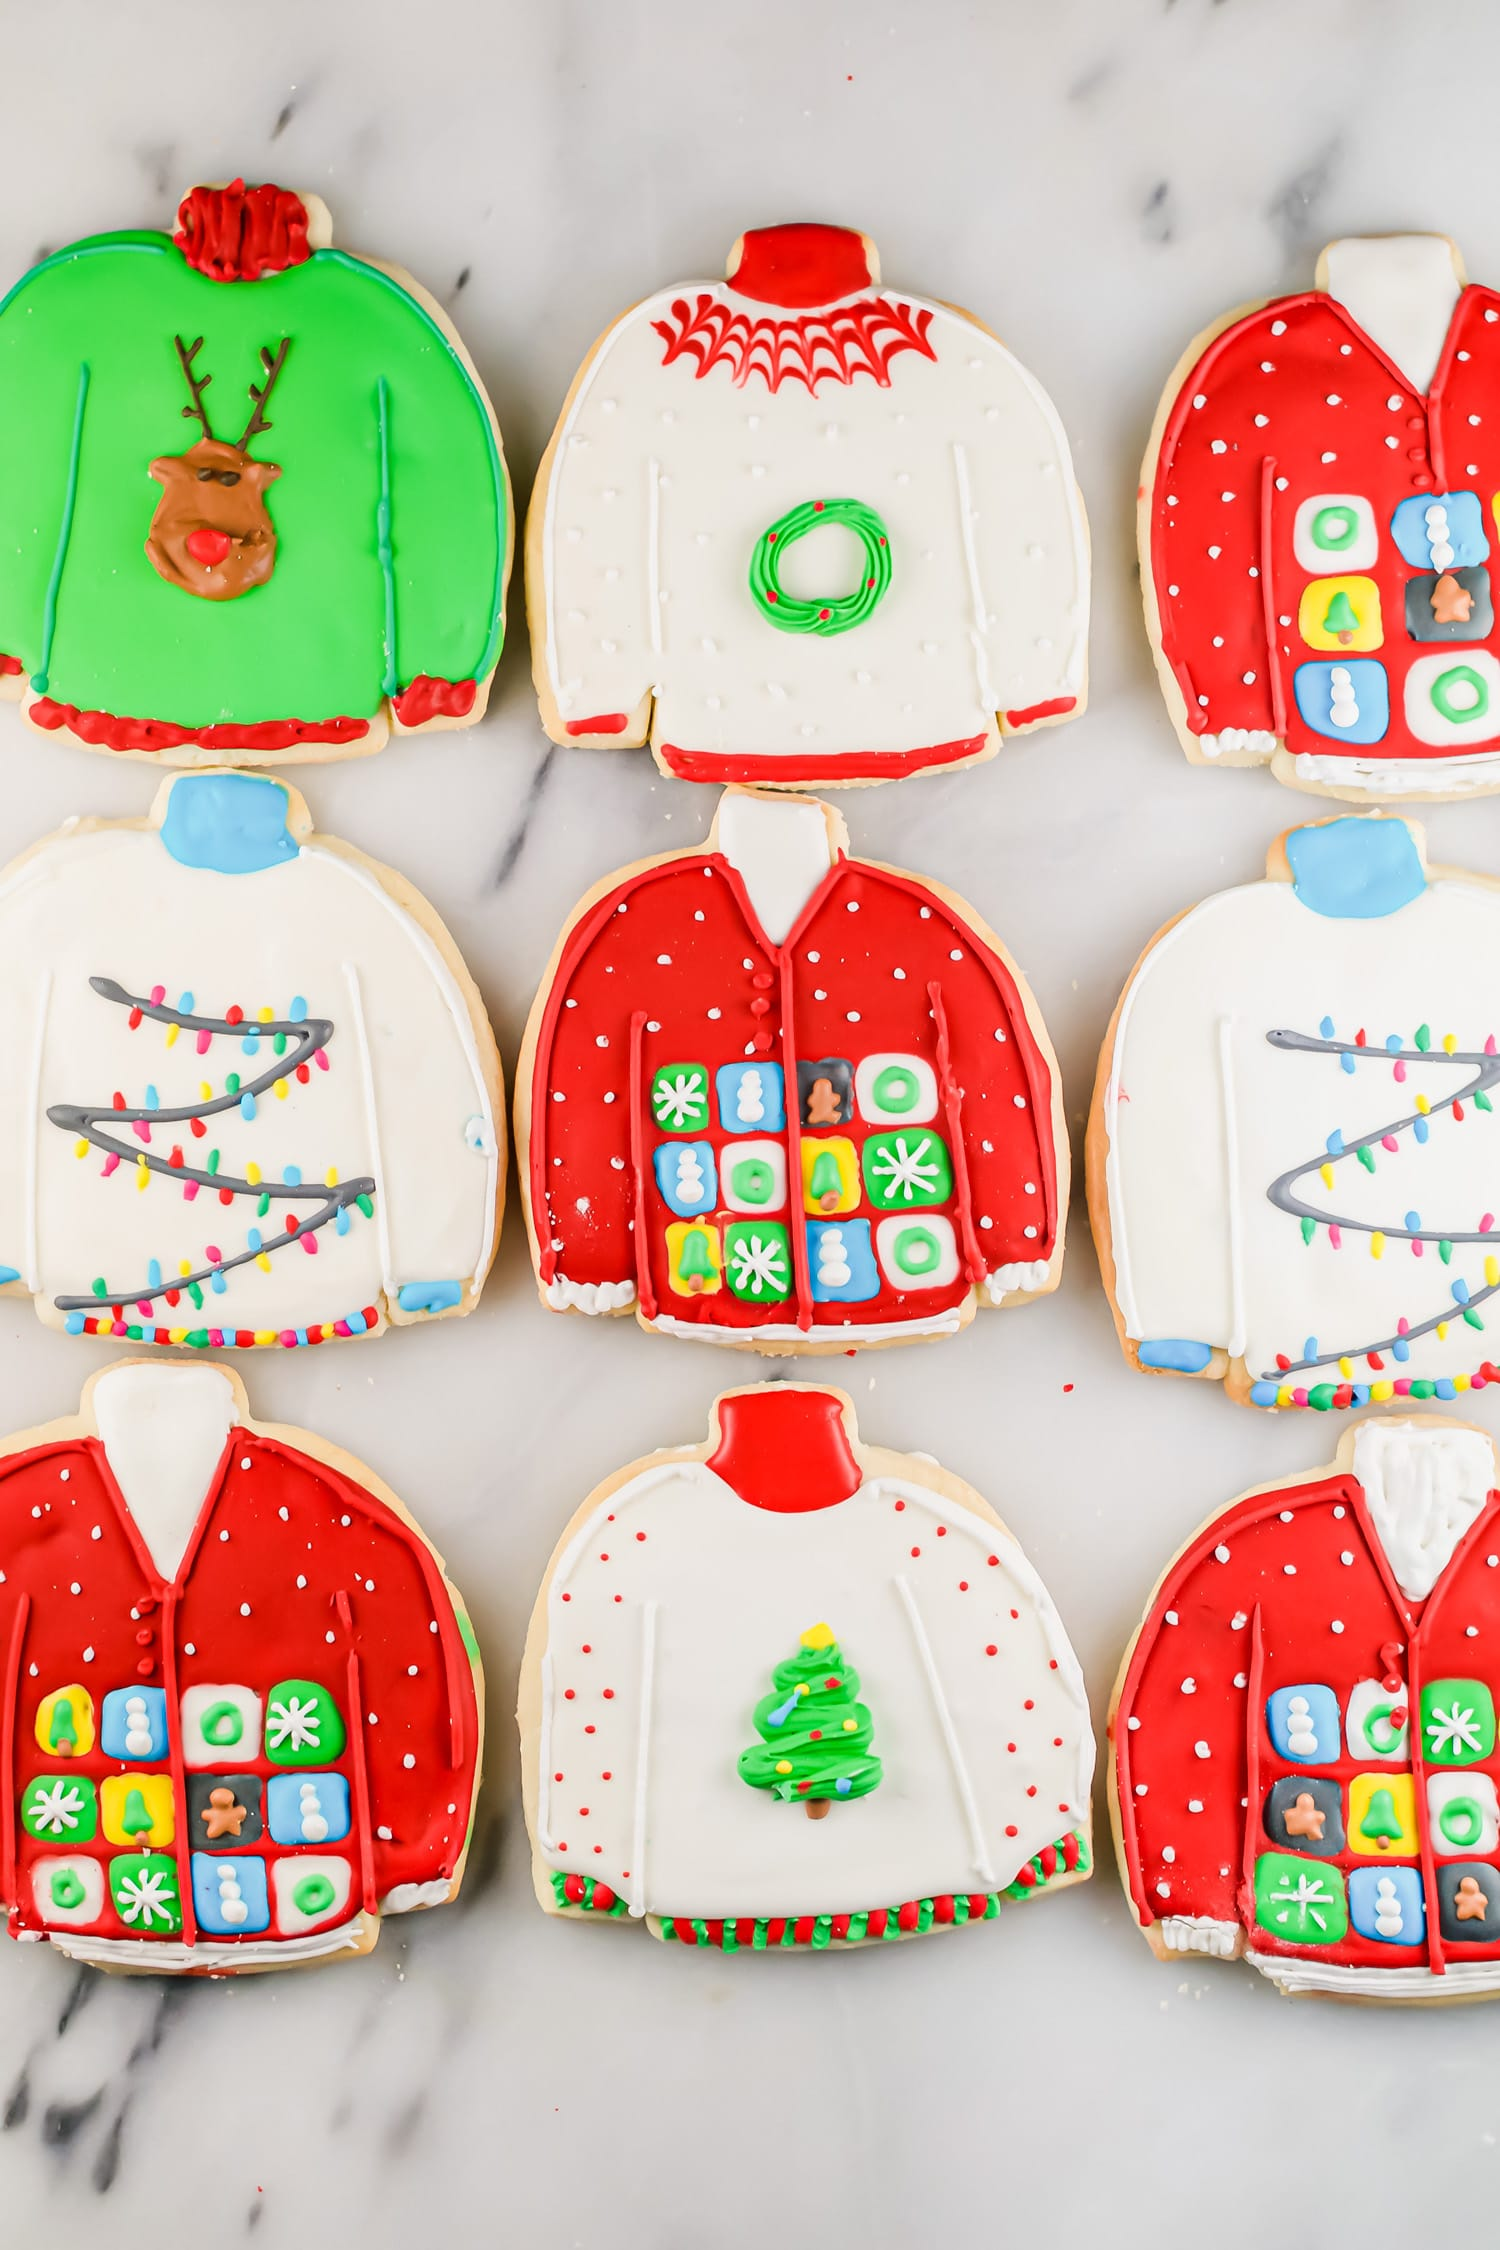 An overhead photo of rows of ugly sweater sugar cookies decorated with royal icing.